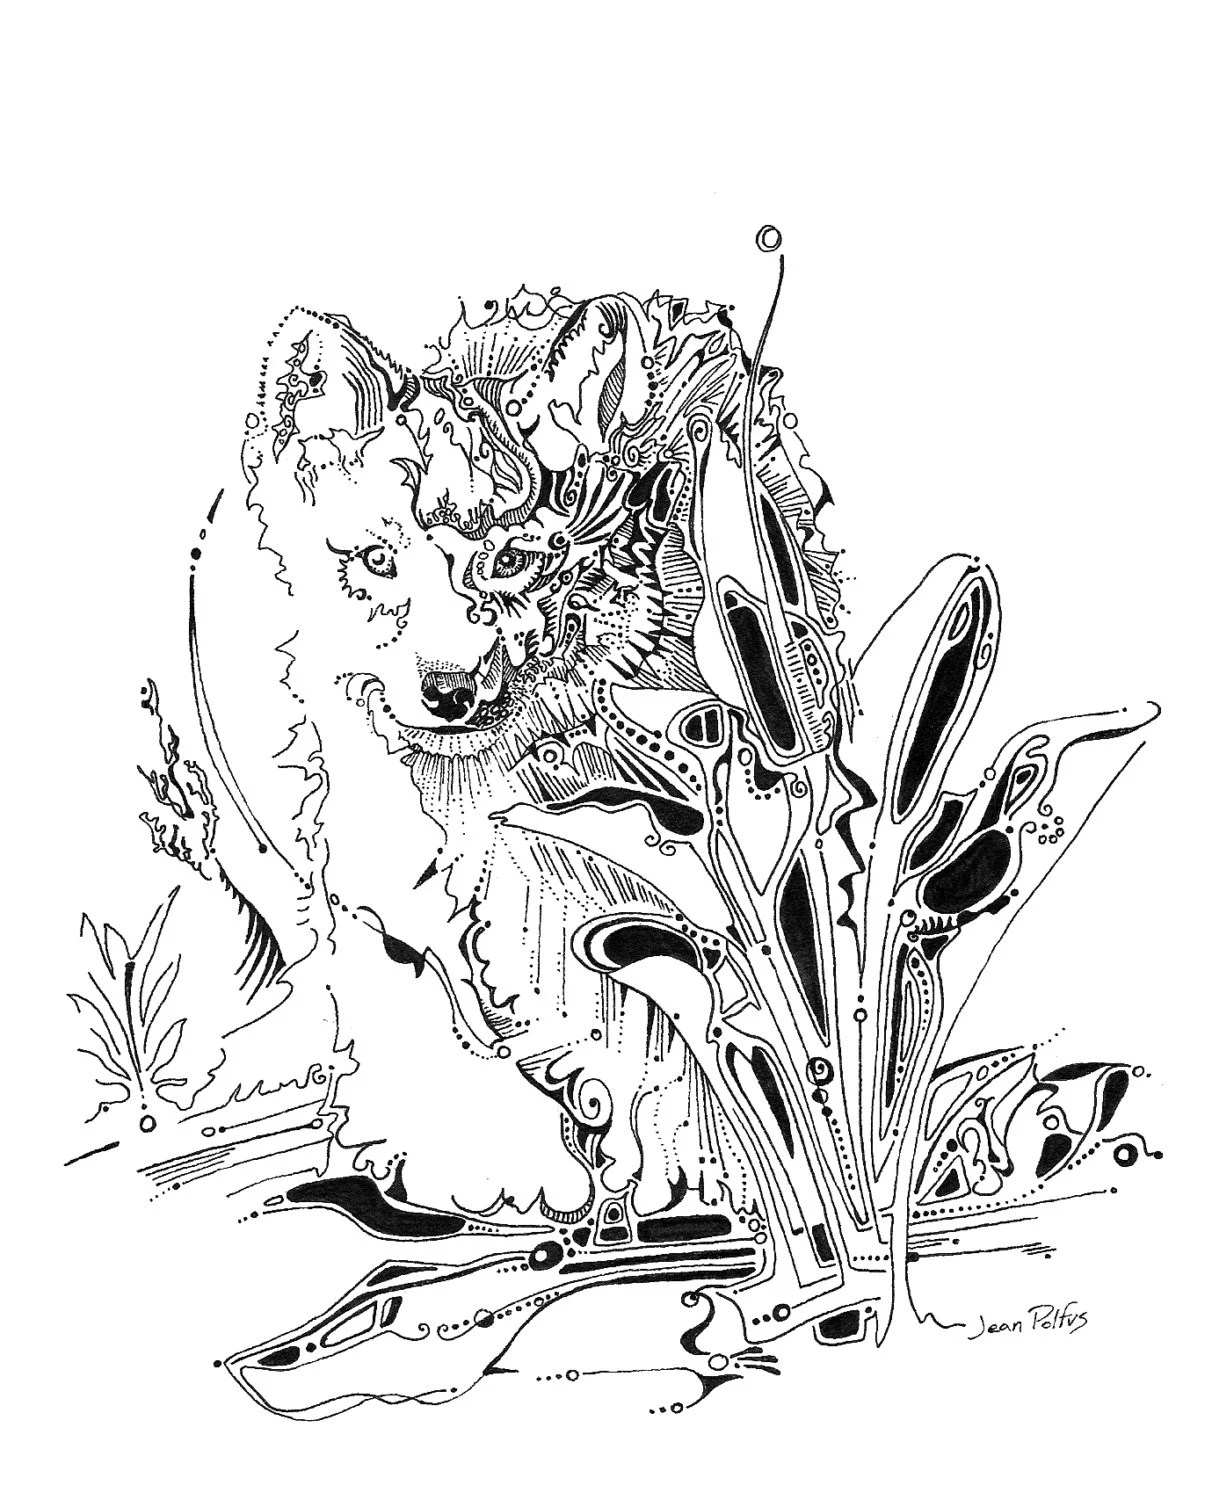 Wolf Pup Drawing : drawing, Drawing, Illustration, Puppy